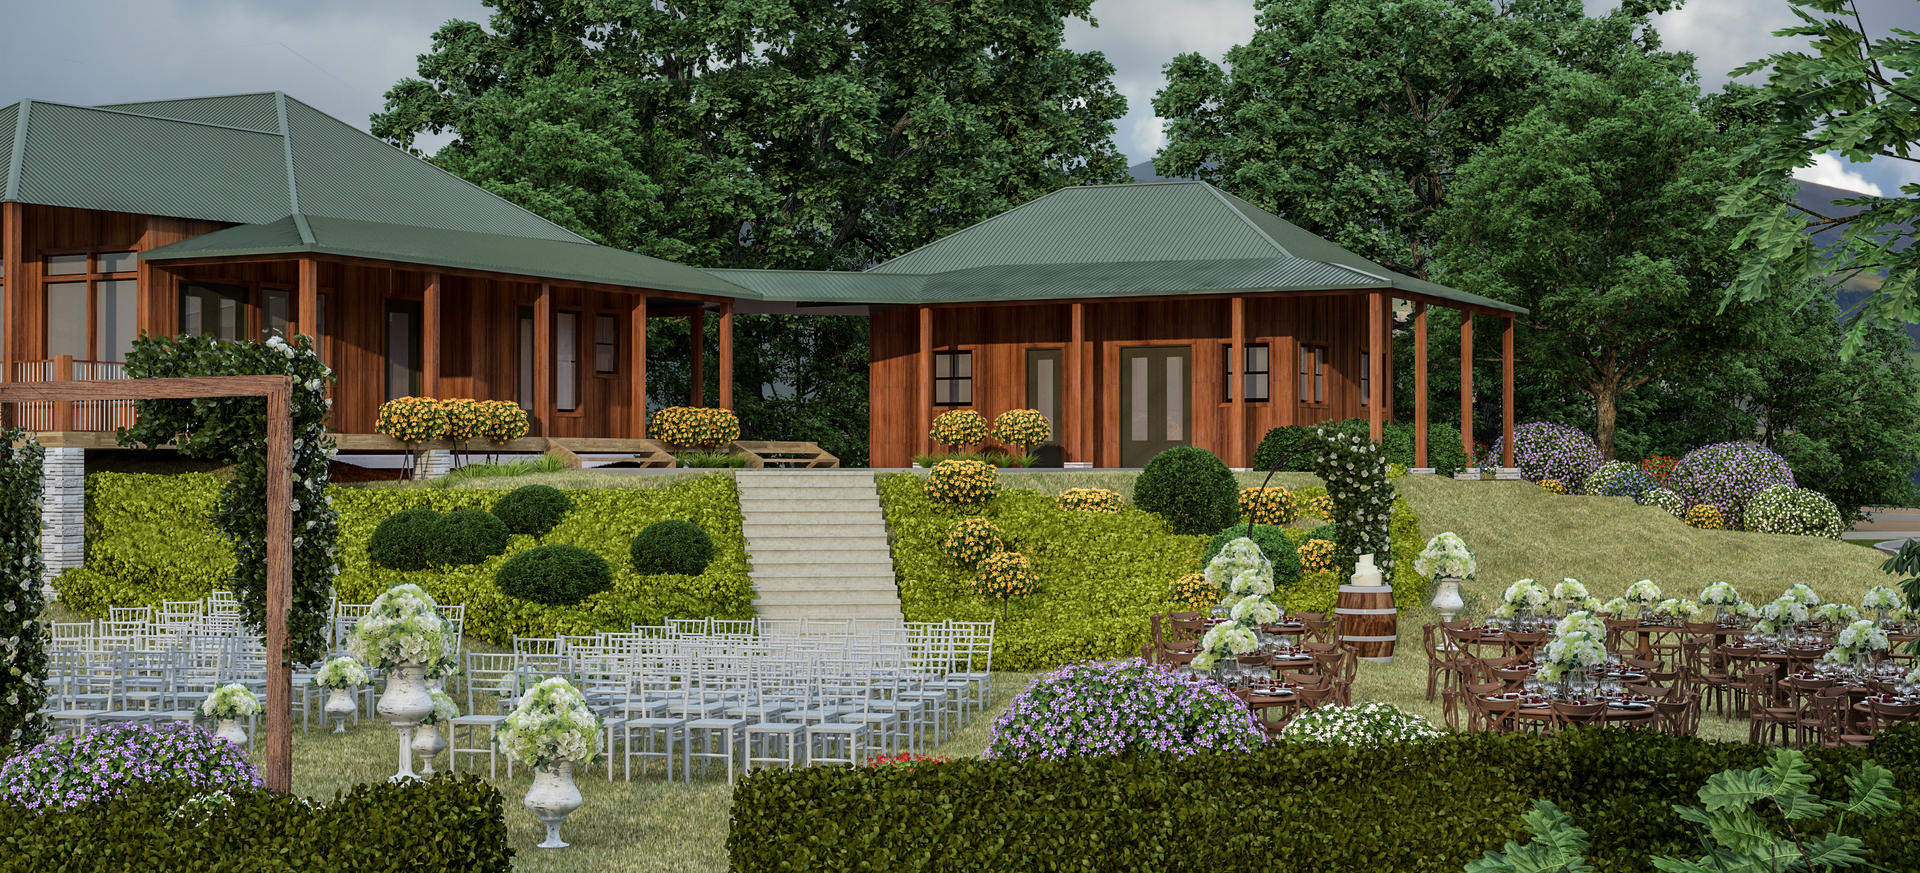 Great Lawn Event Rendering